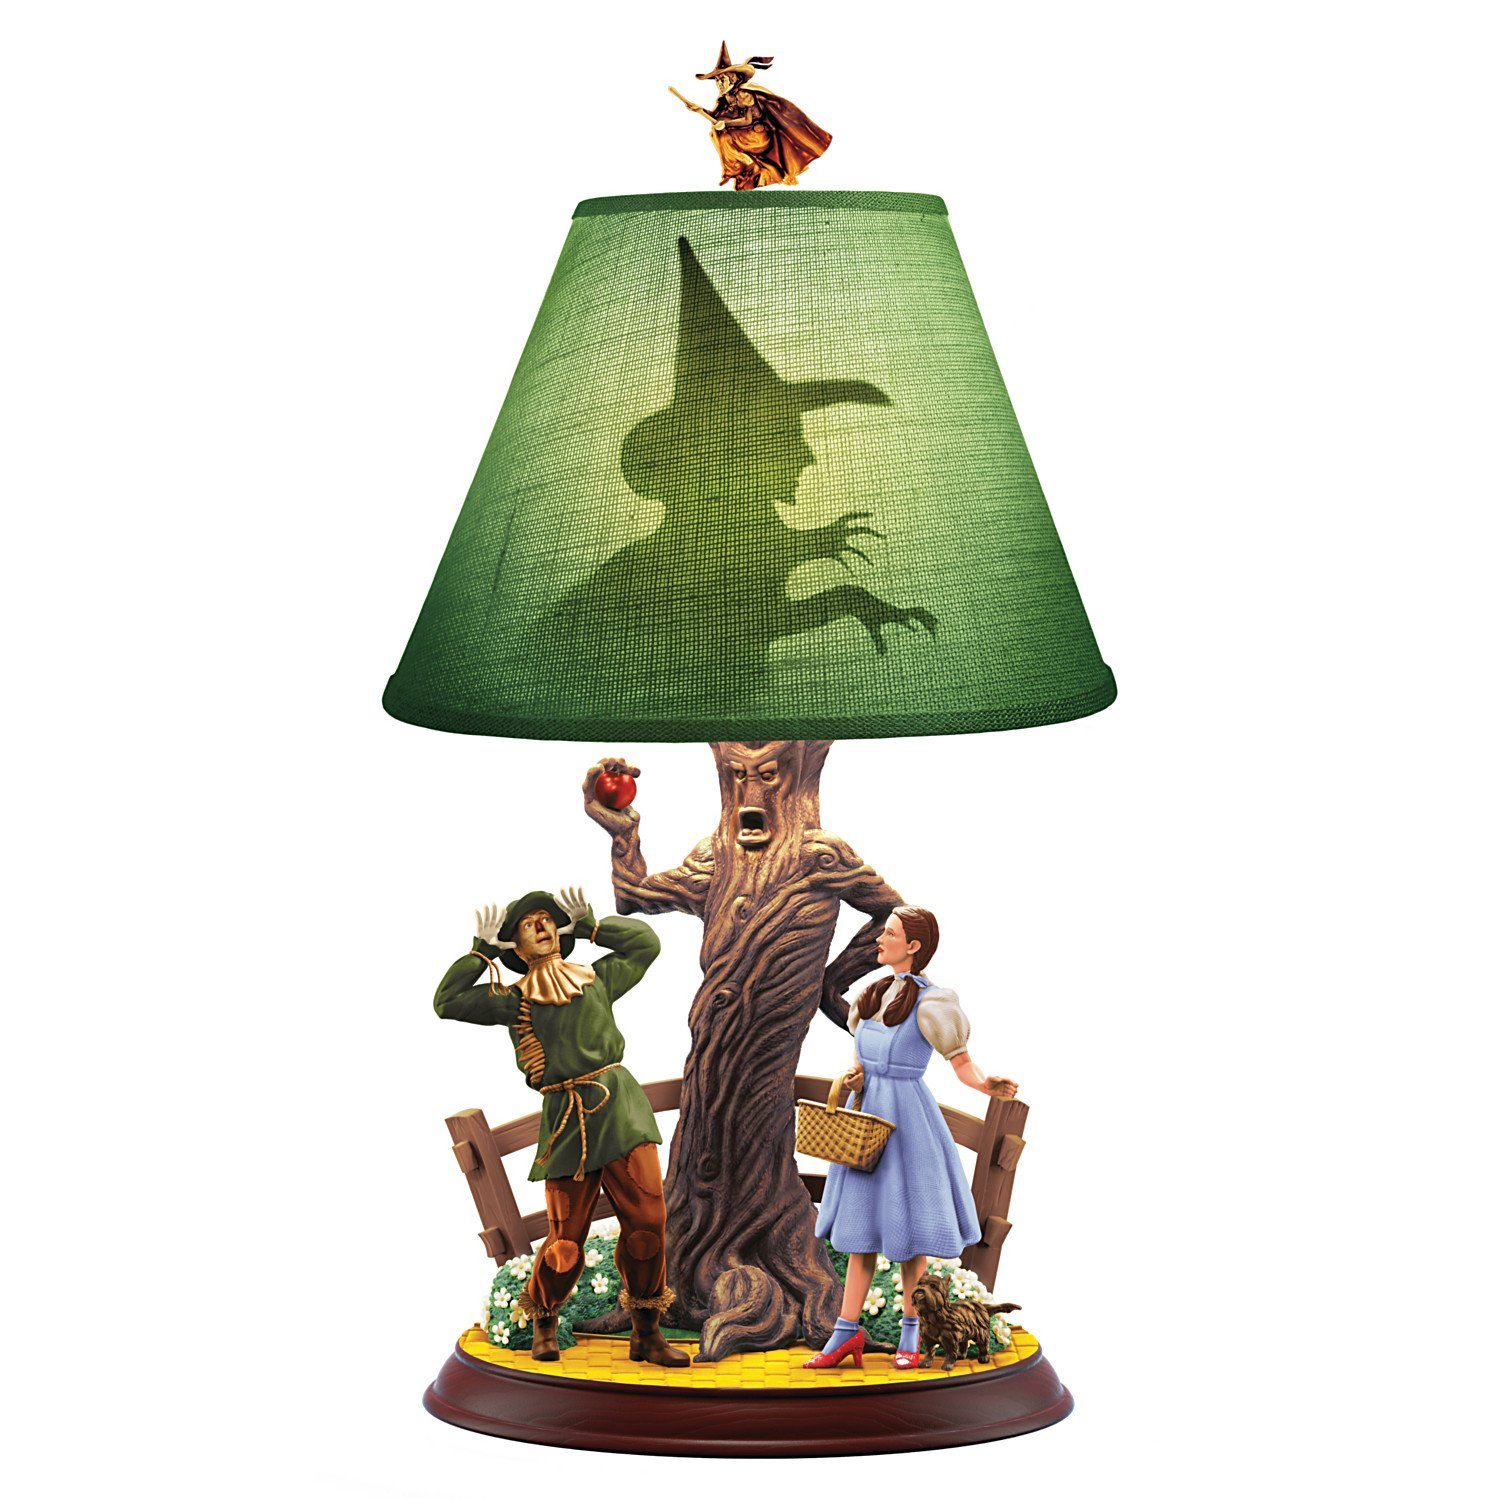 THE WIZARD OF OZ We're Not In Kansas Anymore DOROTHY and SCARECROW Lamp by The Bradford Exchange